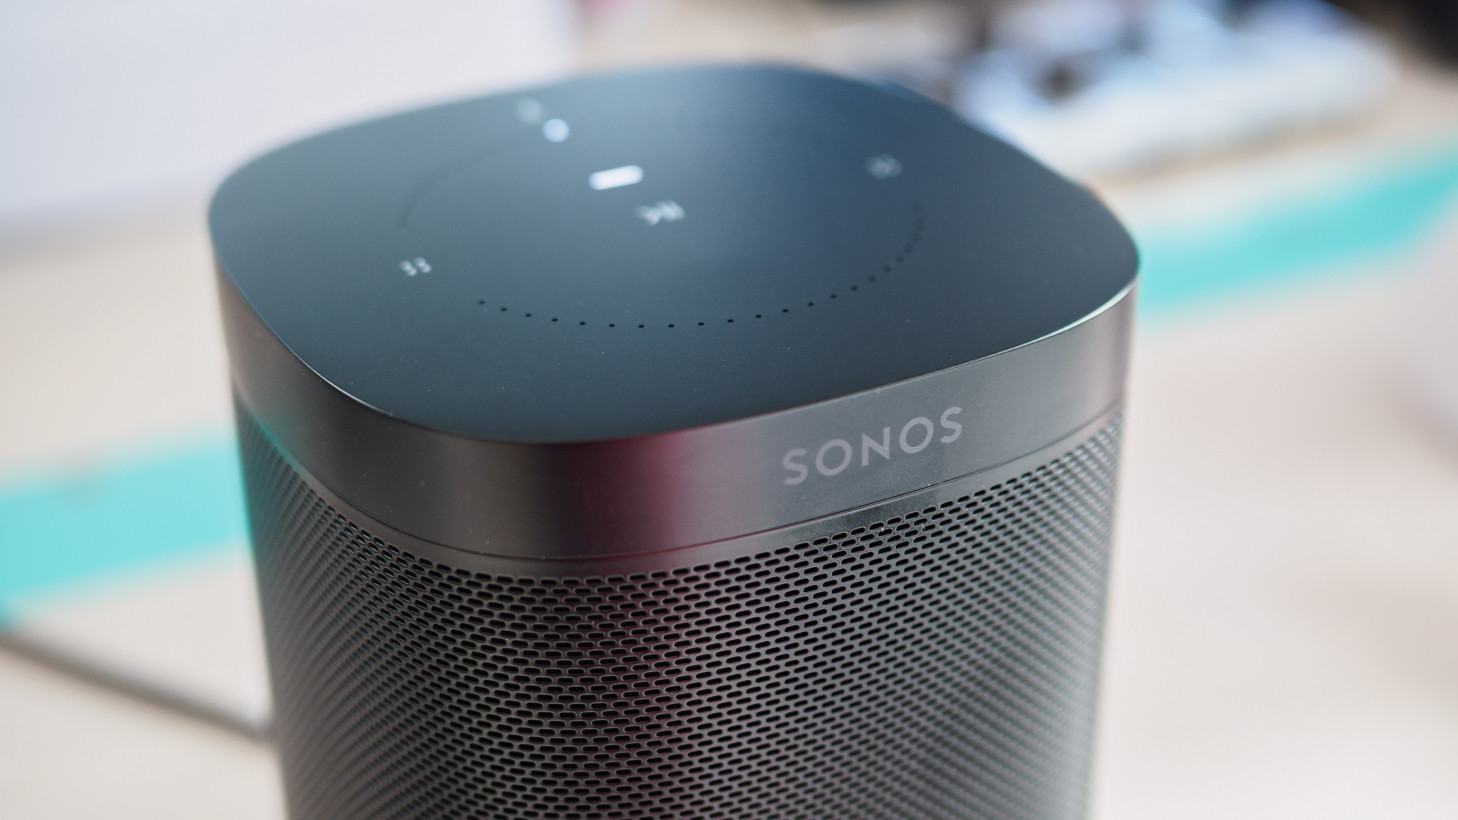 Sonos finally supports Google Assistant voice control (and it plays nice with Alexa)